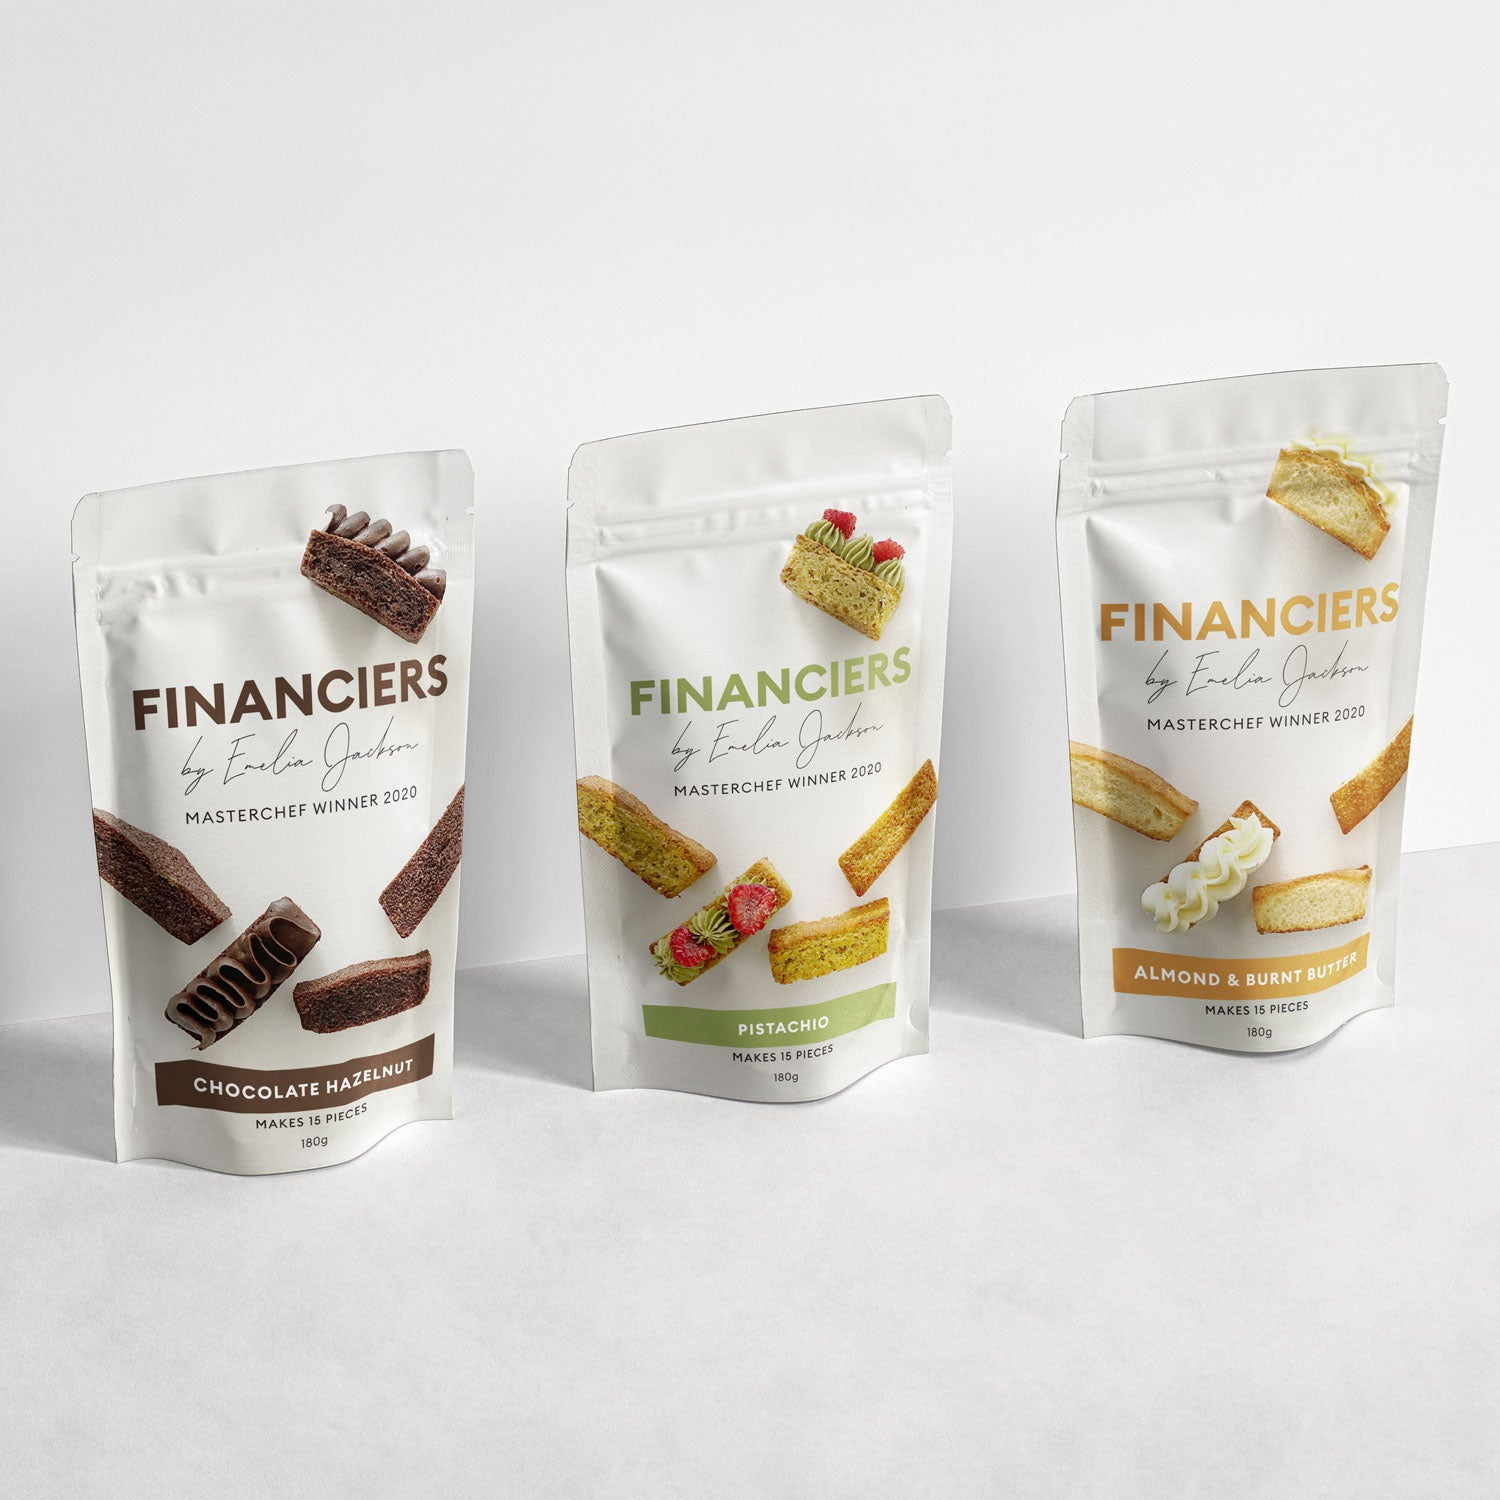 Financiers (3 Flavours) - PREORDER MARCH 21ST